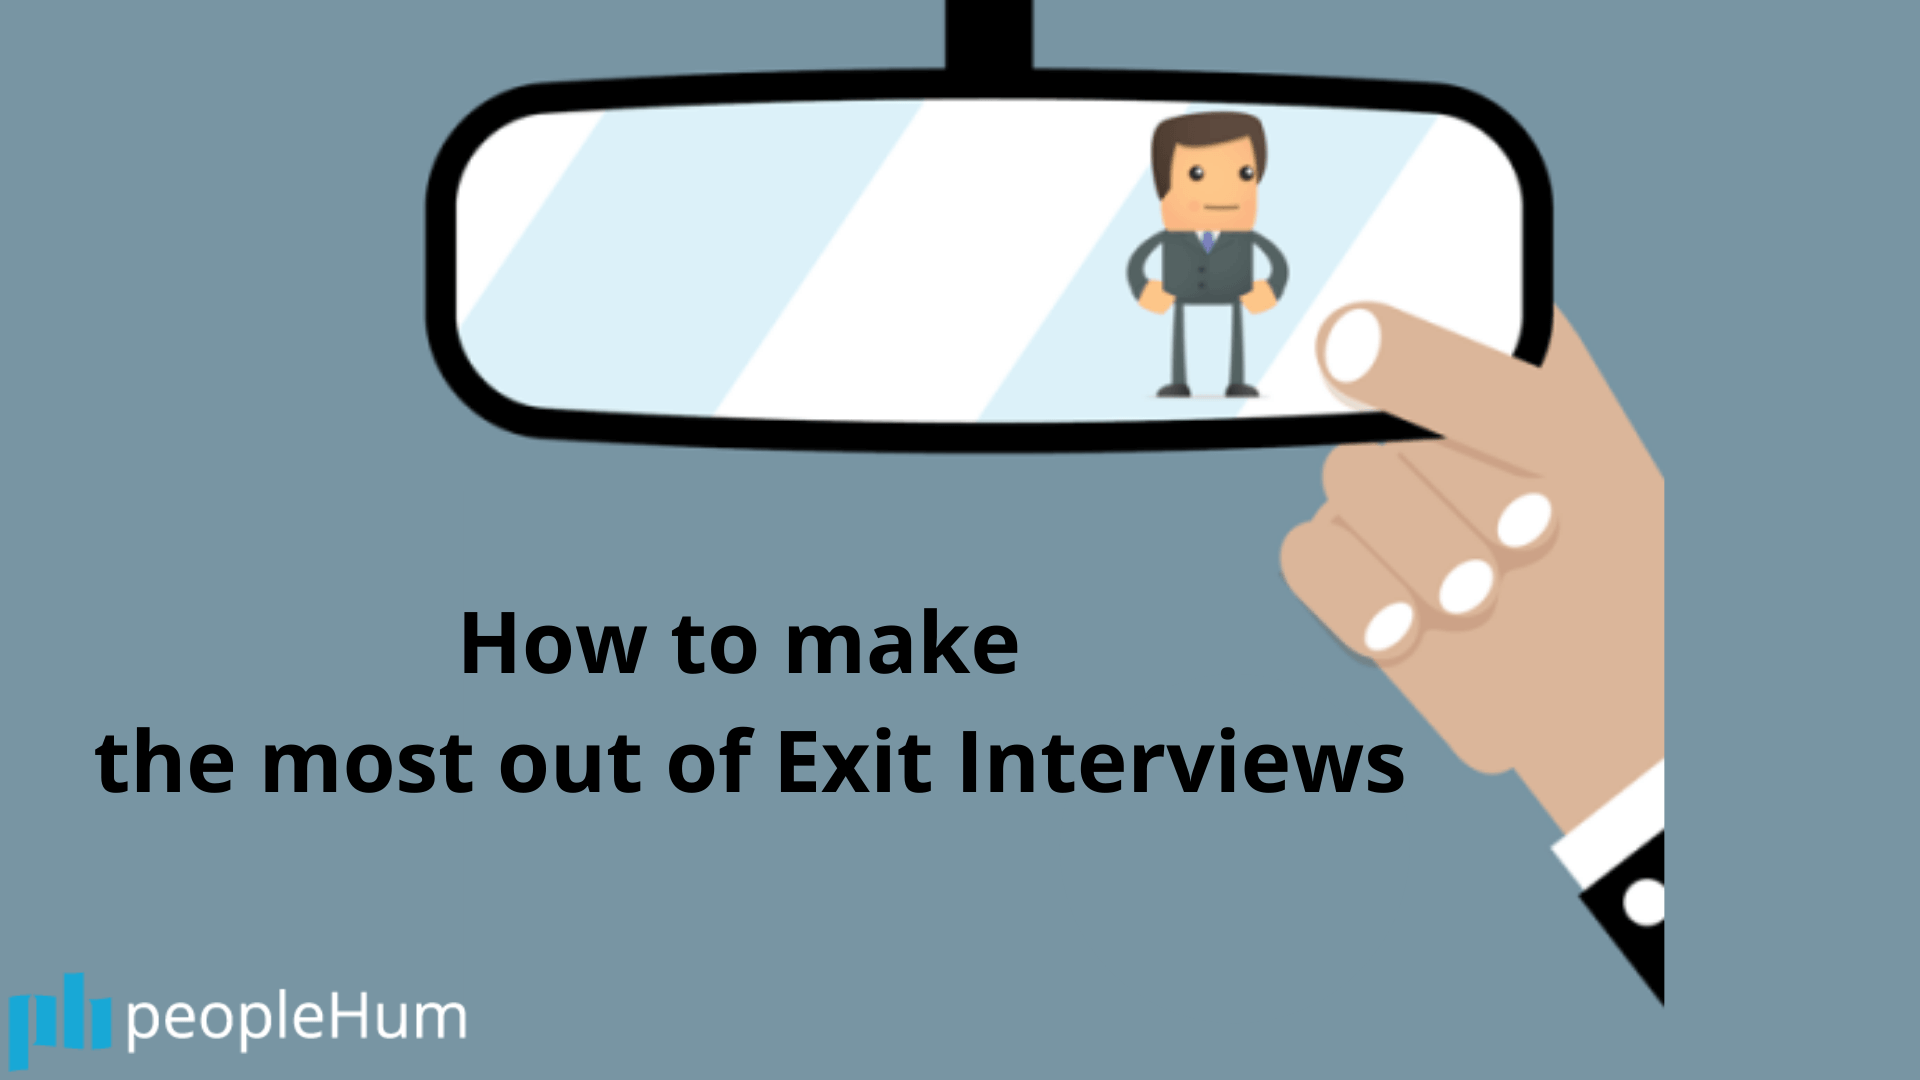 How to make exit interviews count